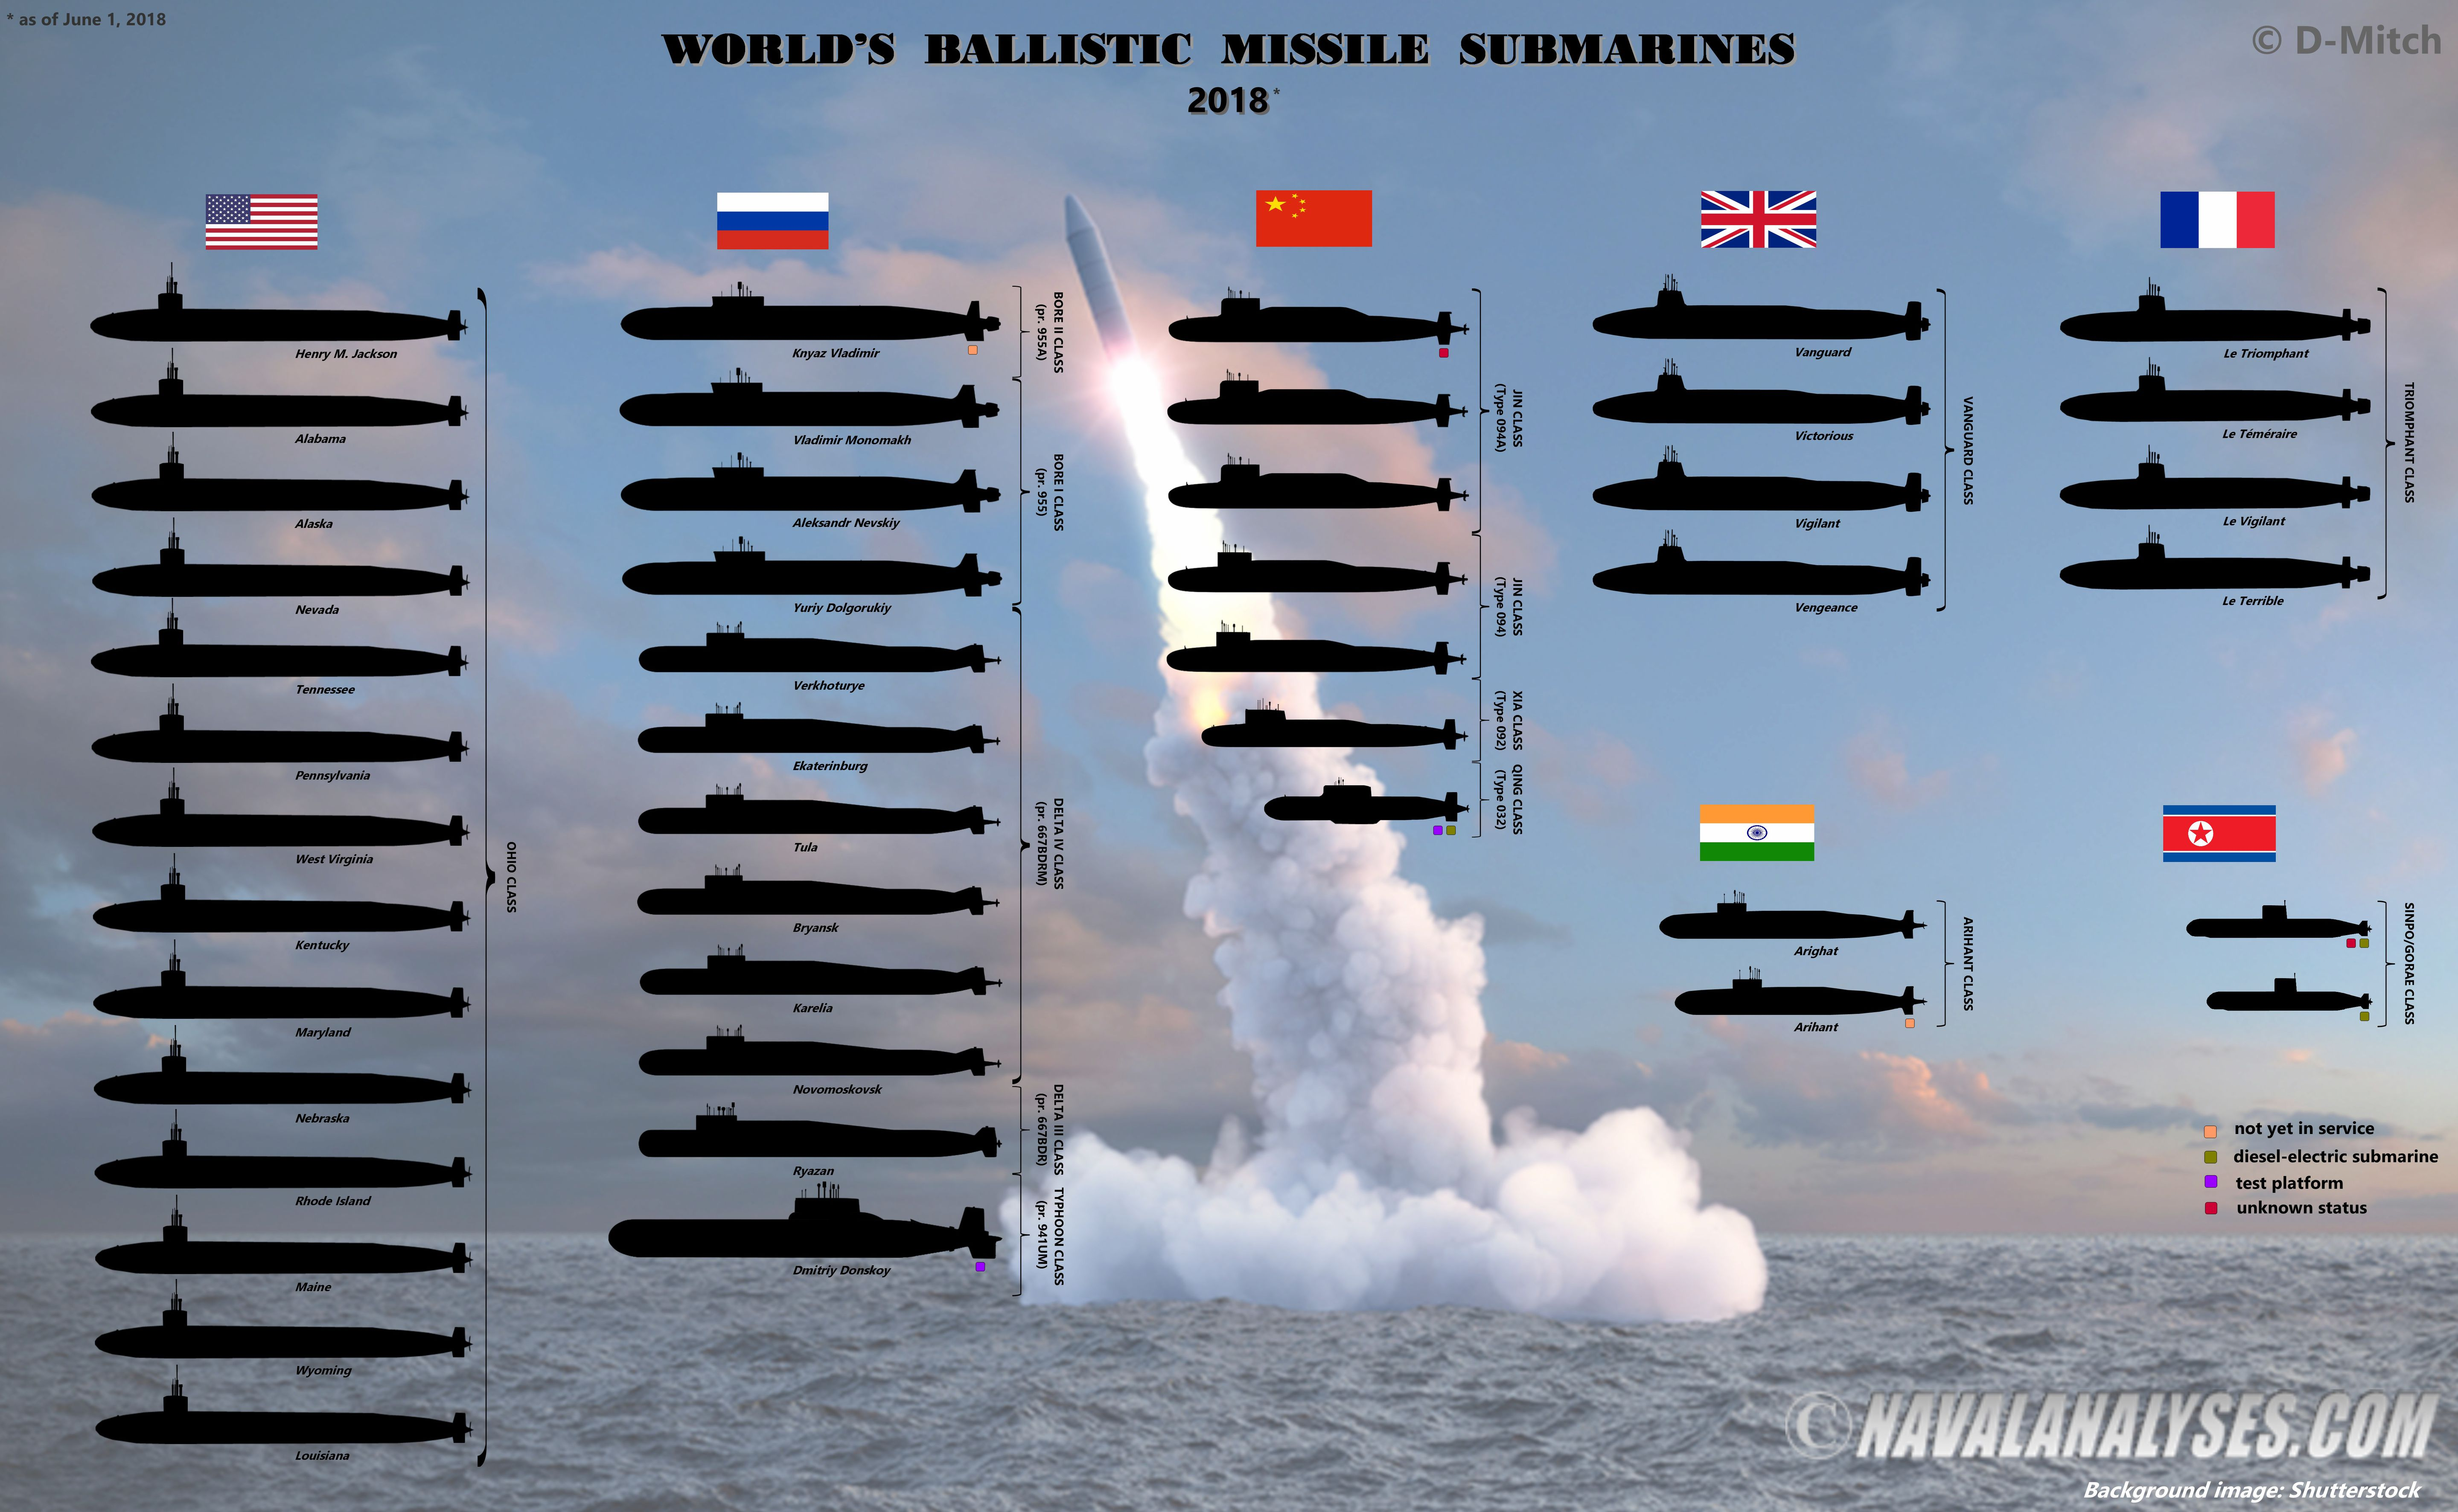 worldwide-ballistic-missile-subs-1528394362_1